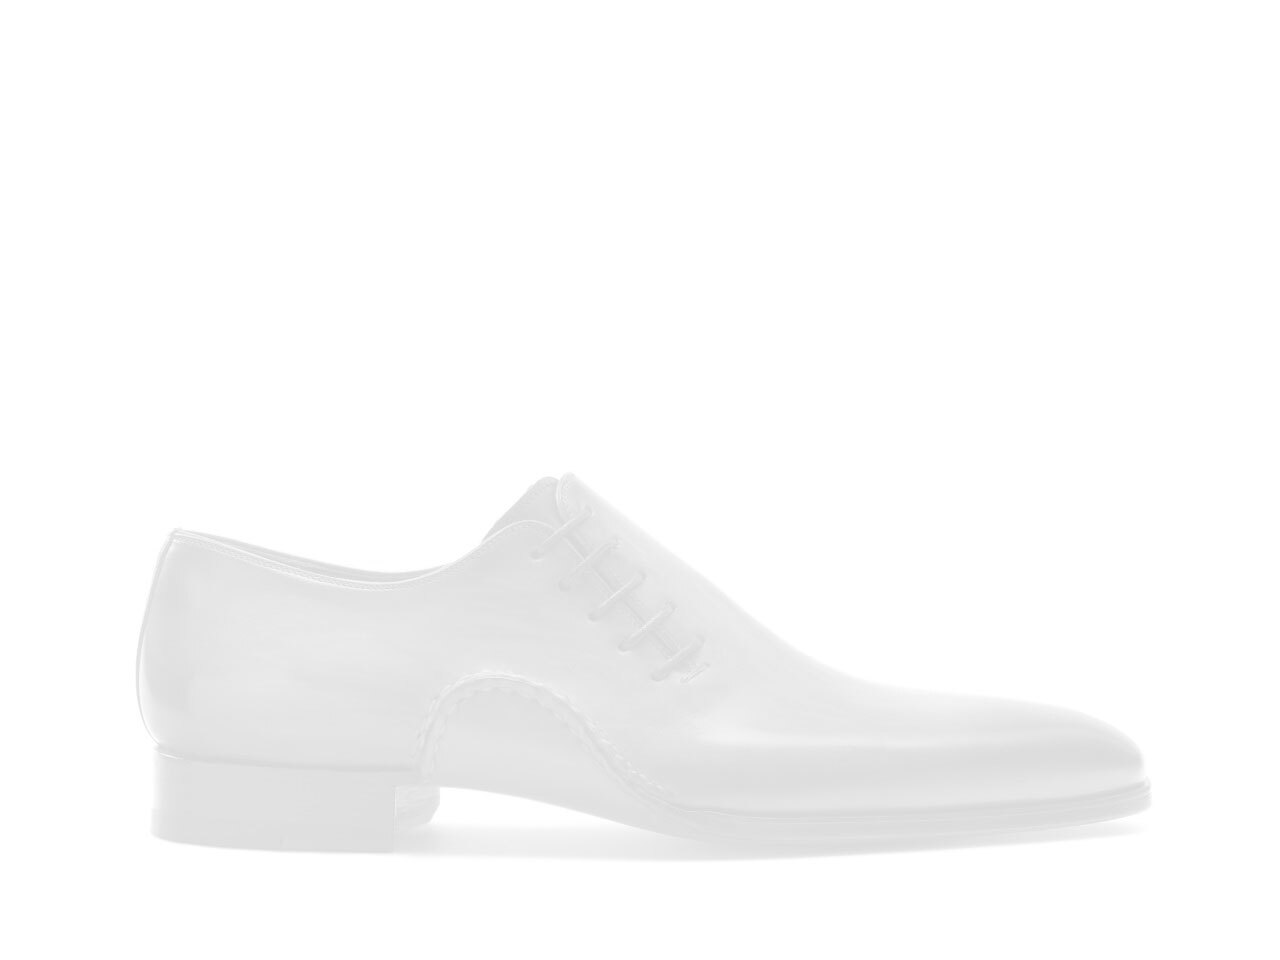 Side view of the Magnanni Lagos Royal Men's Oxford Shoes